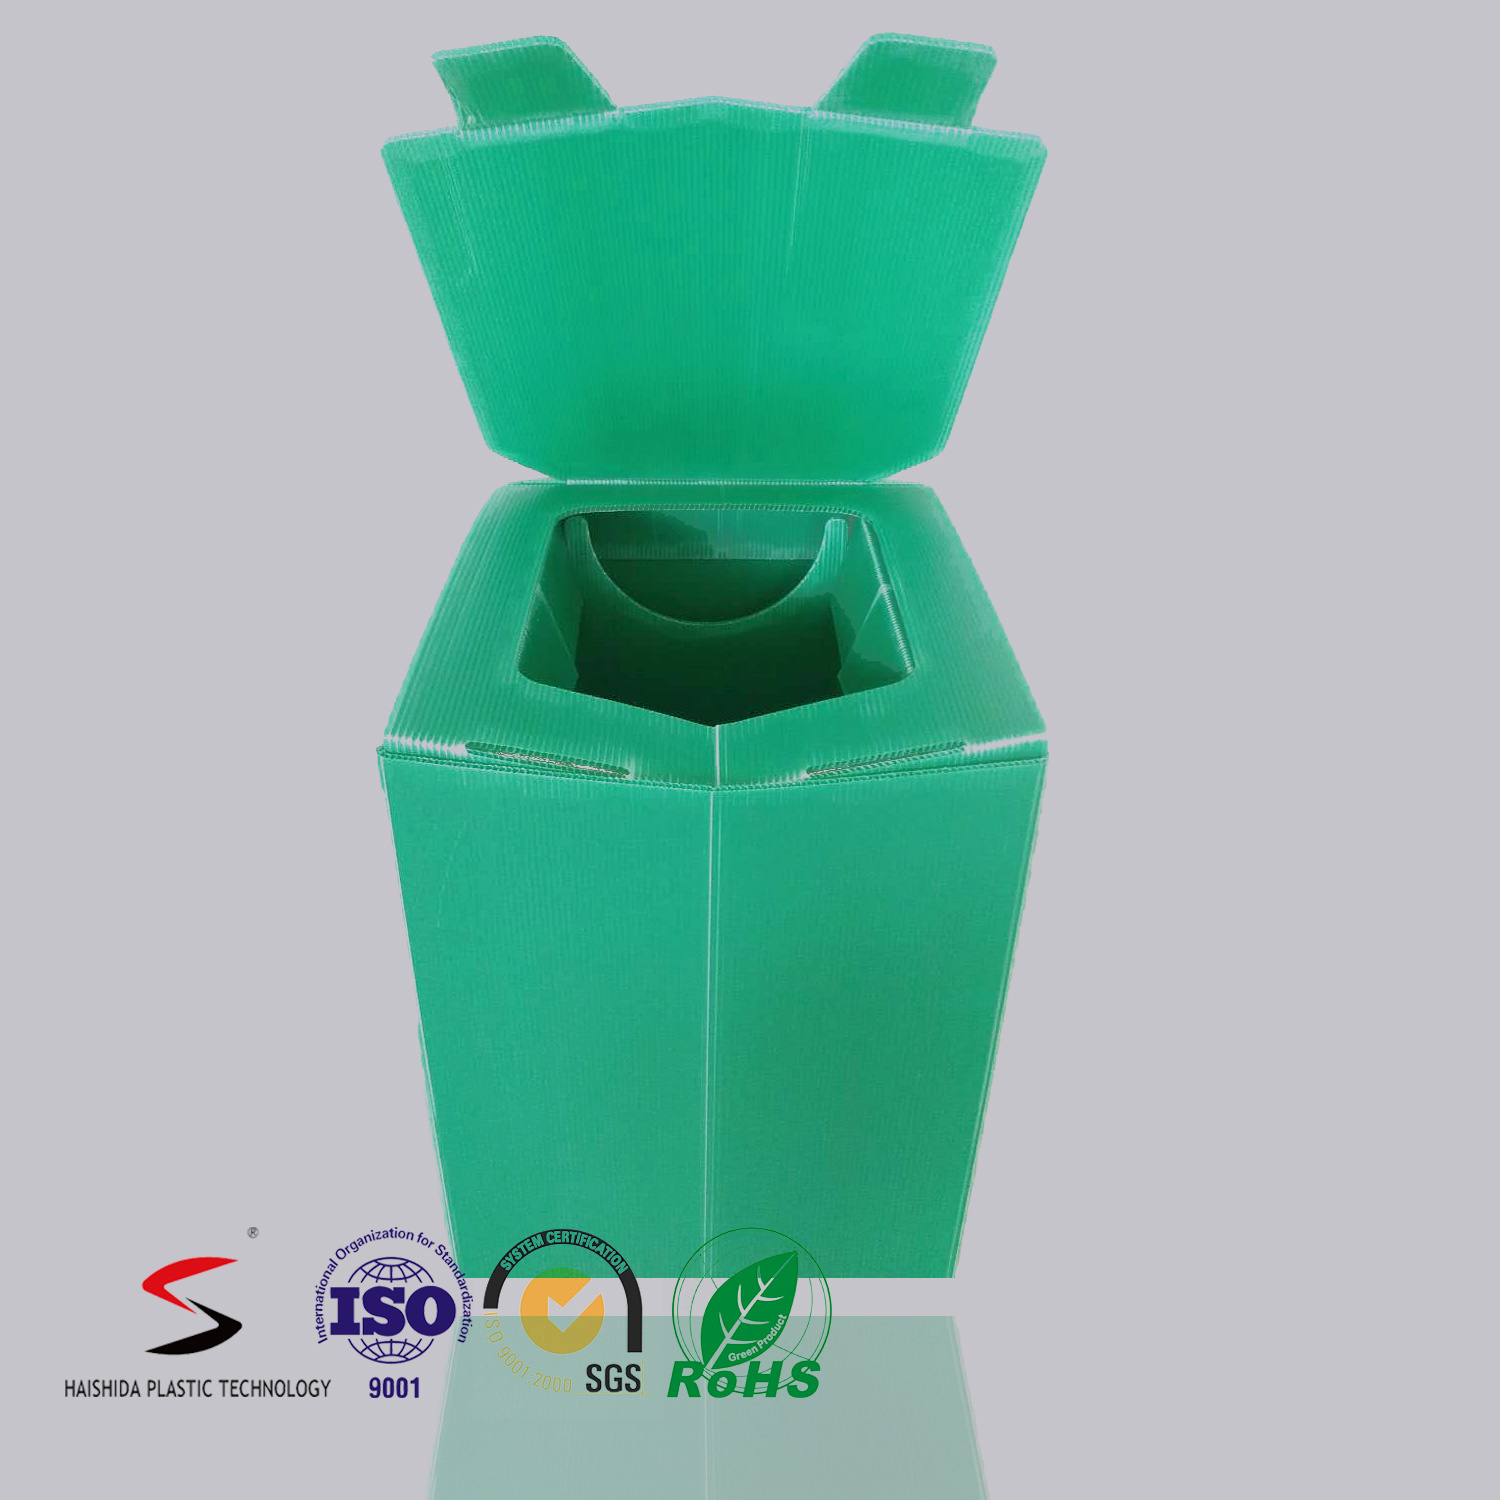 Processing Set Mobile Toilet Disaster Toilet Emergency Toilet